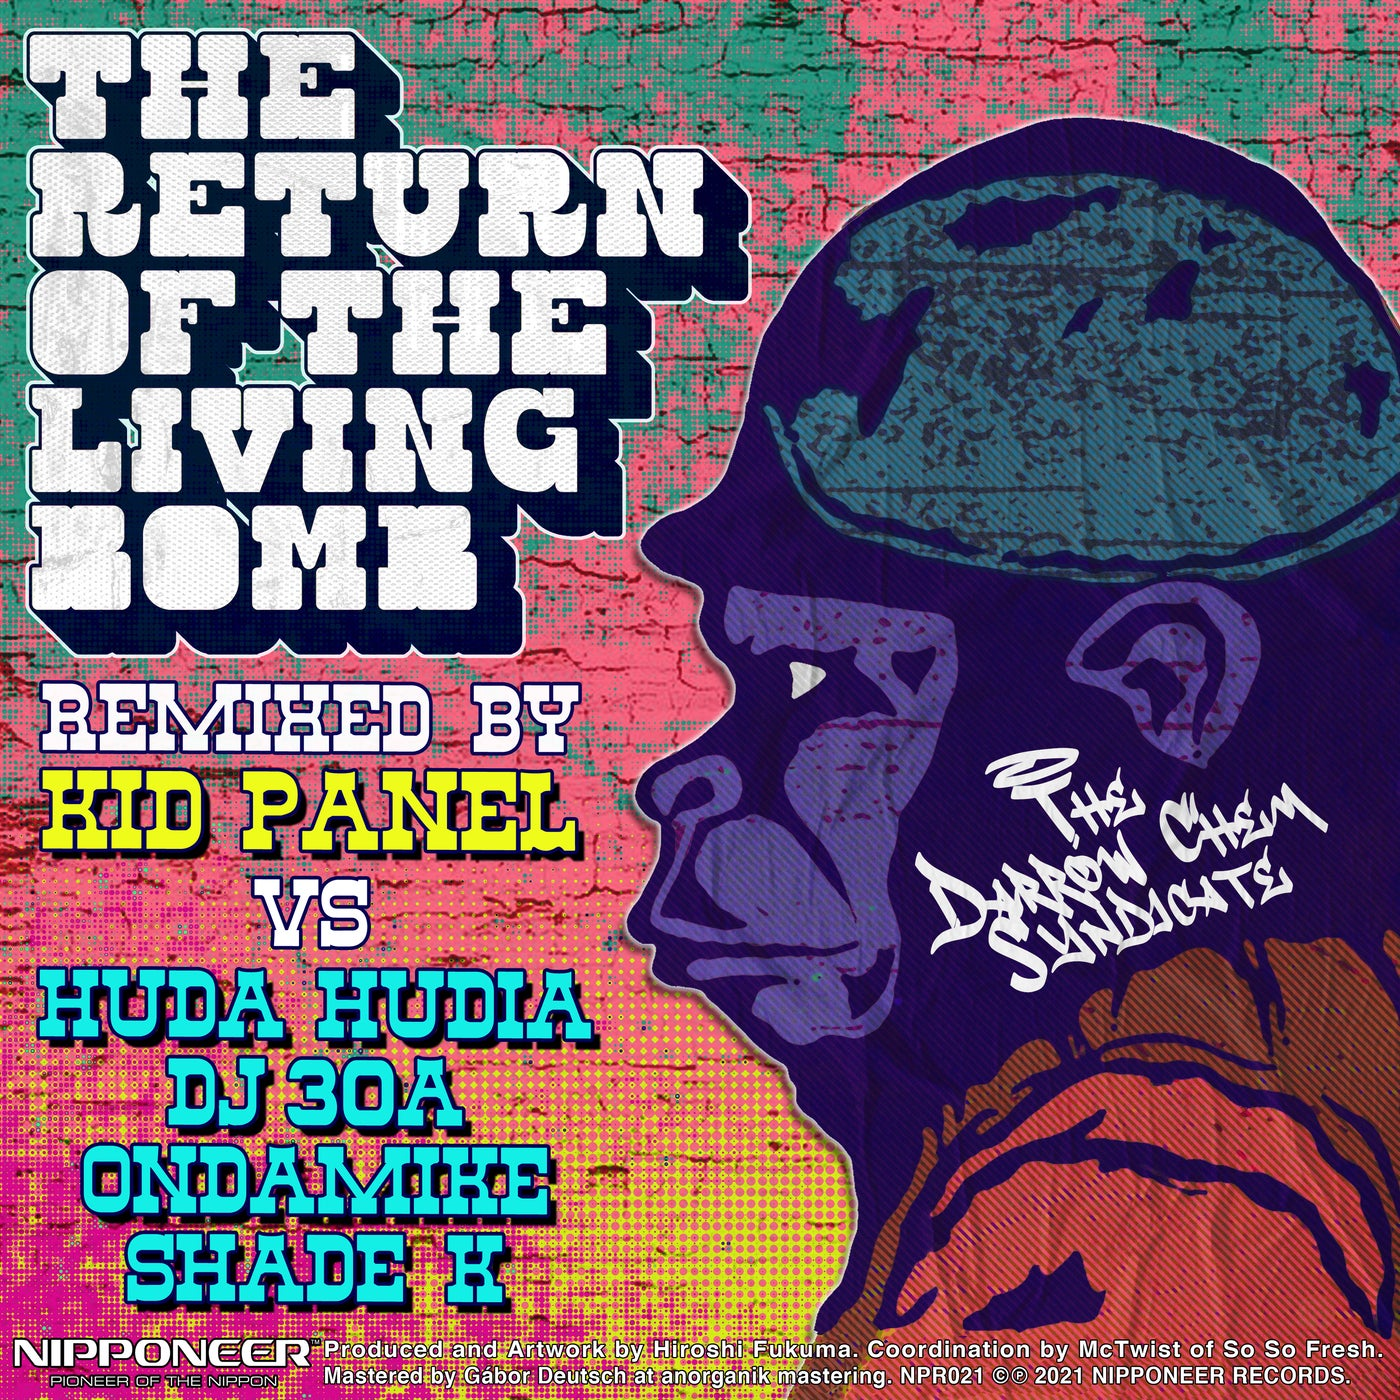 The Return Of The Living Bomb (Huda Hudia & DJ30A vs Kid Panel Remix)